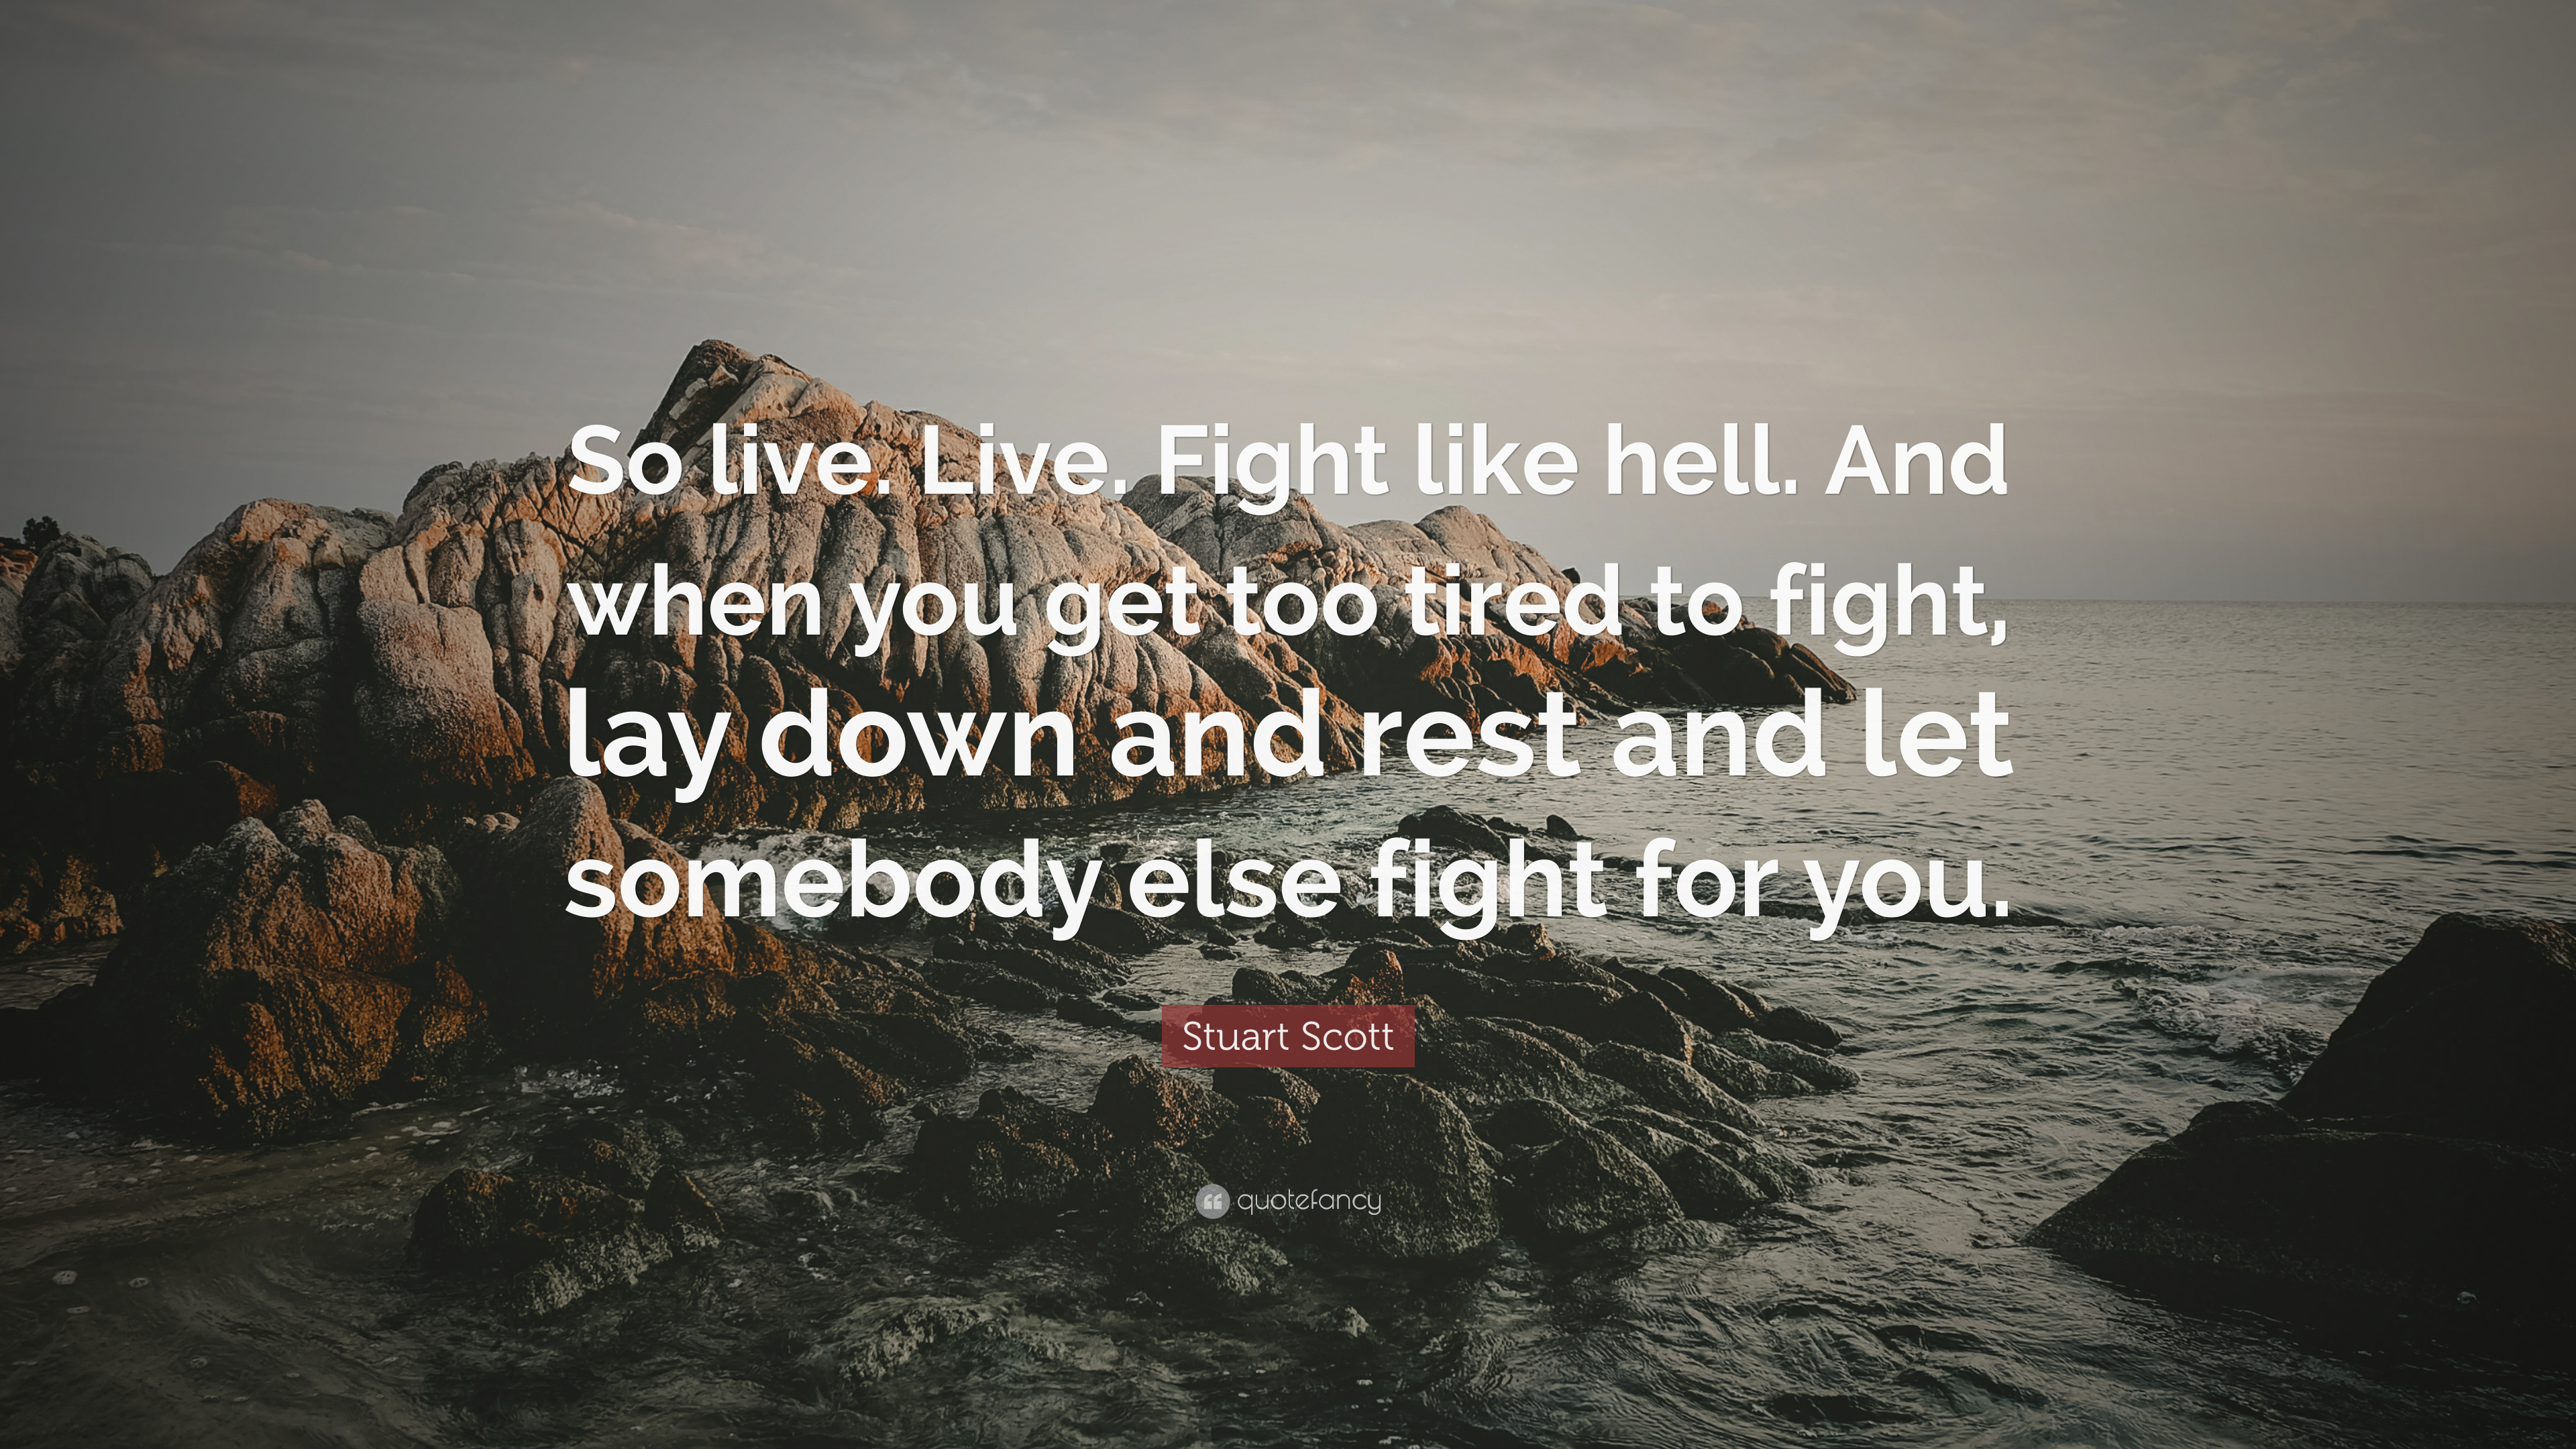 Stuart Scott Quote So Live Live Fight Like Hell And When You